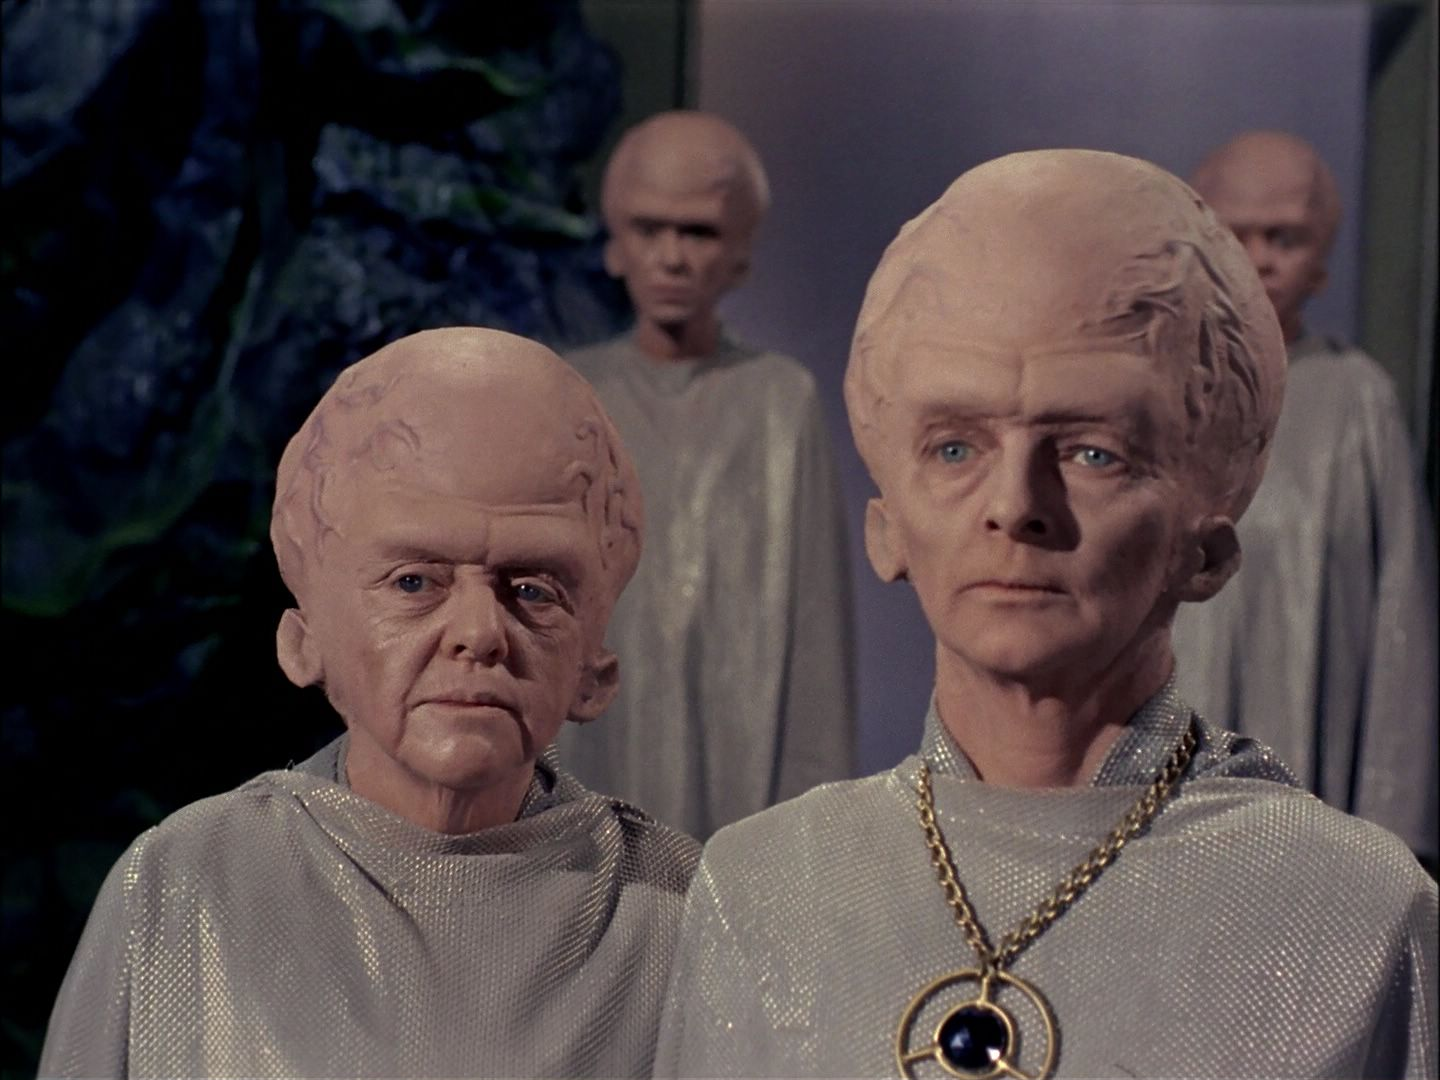 Star Trek: TOS – S01E11-E12, The menagerie